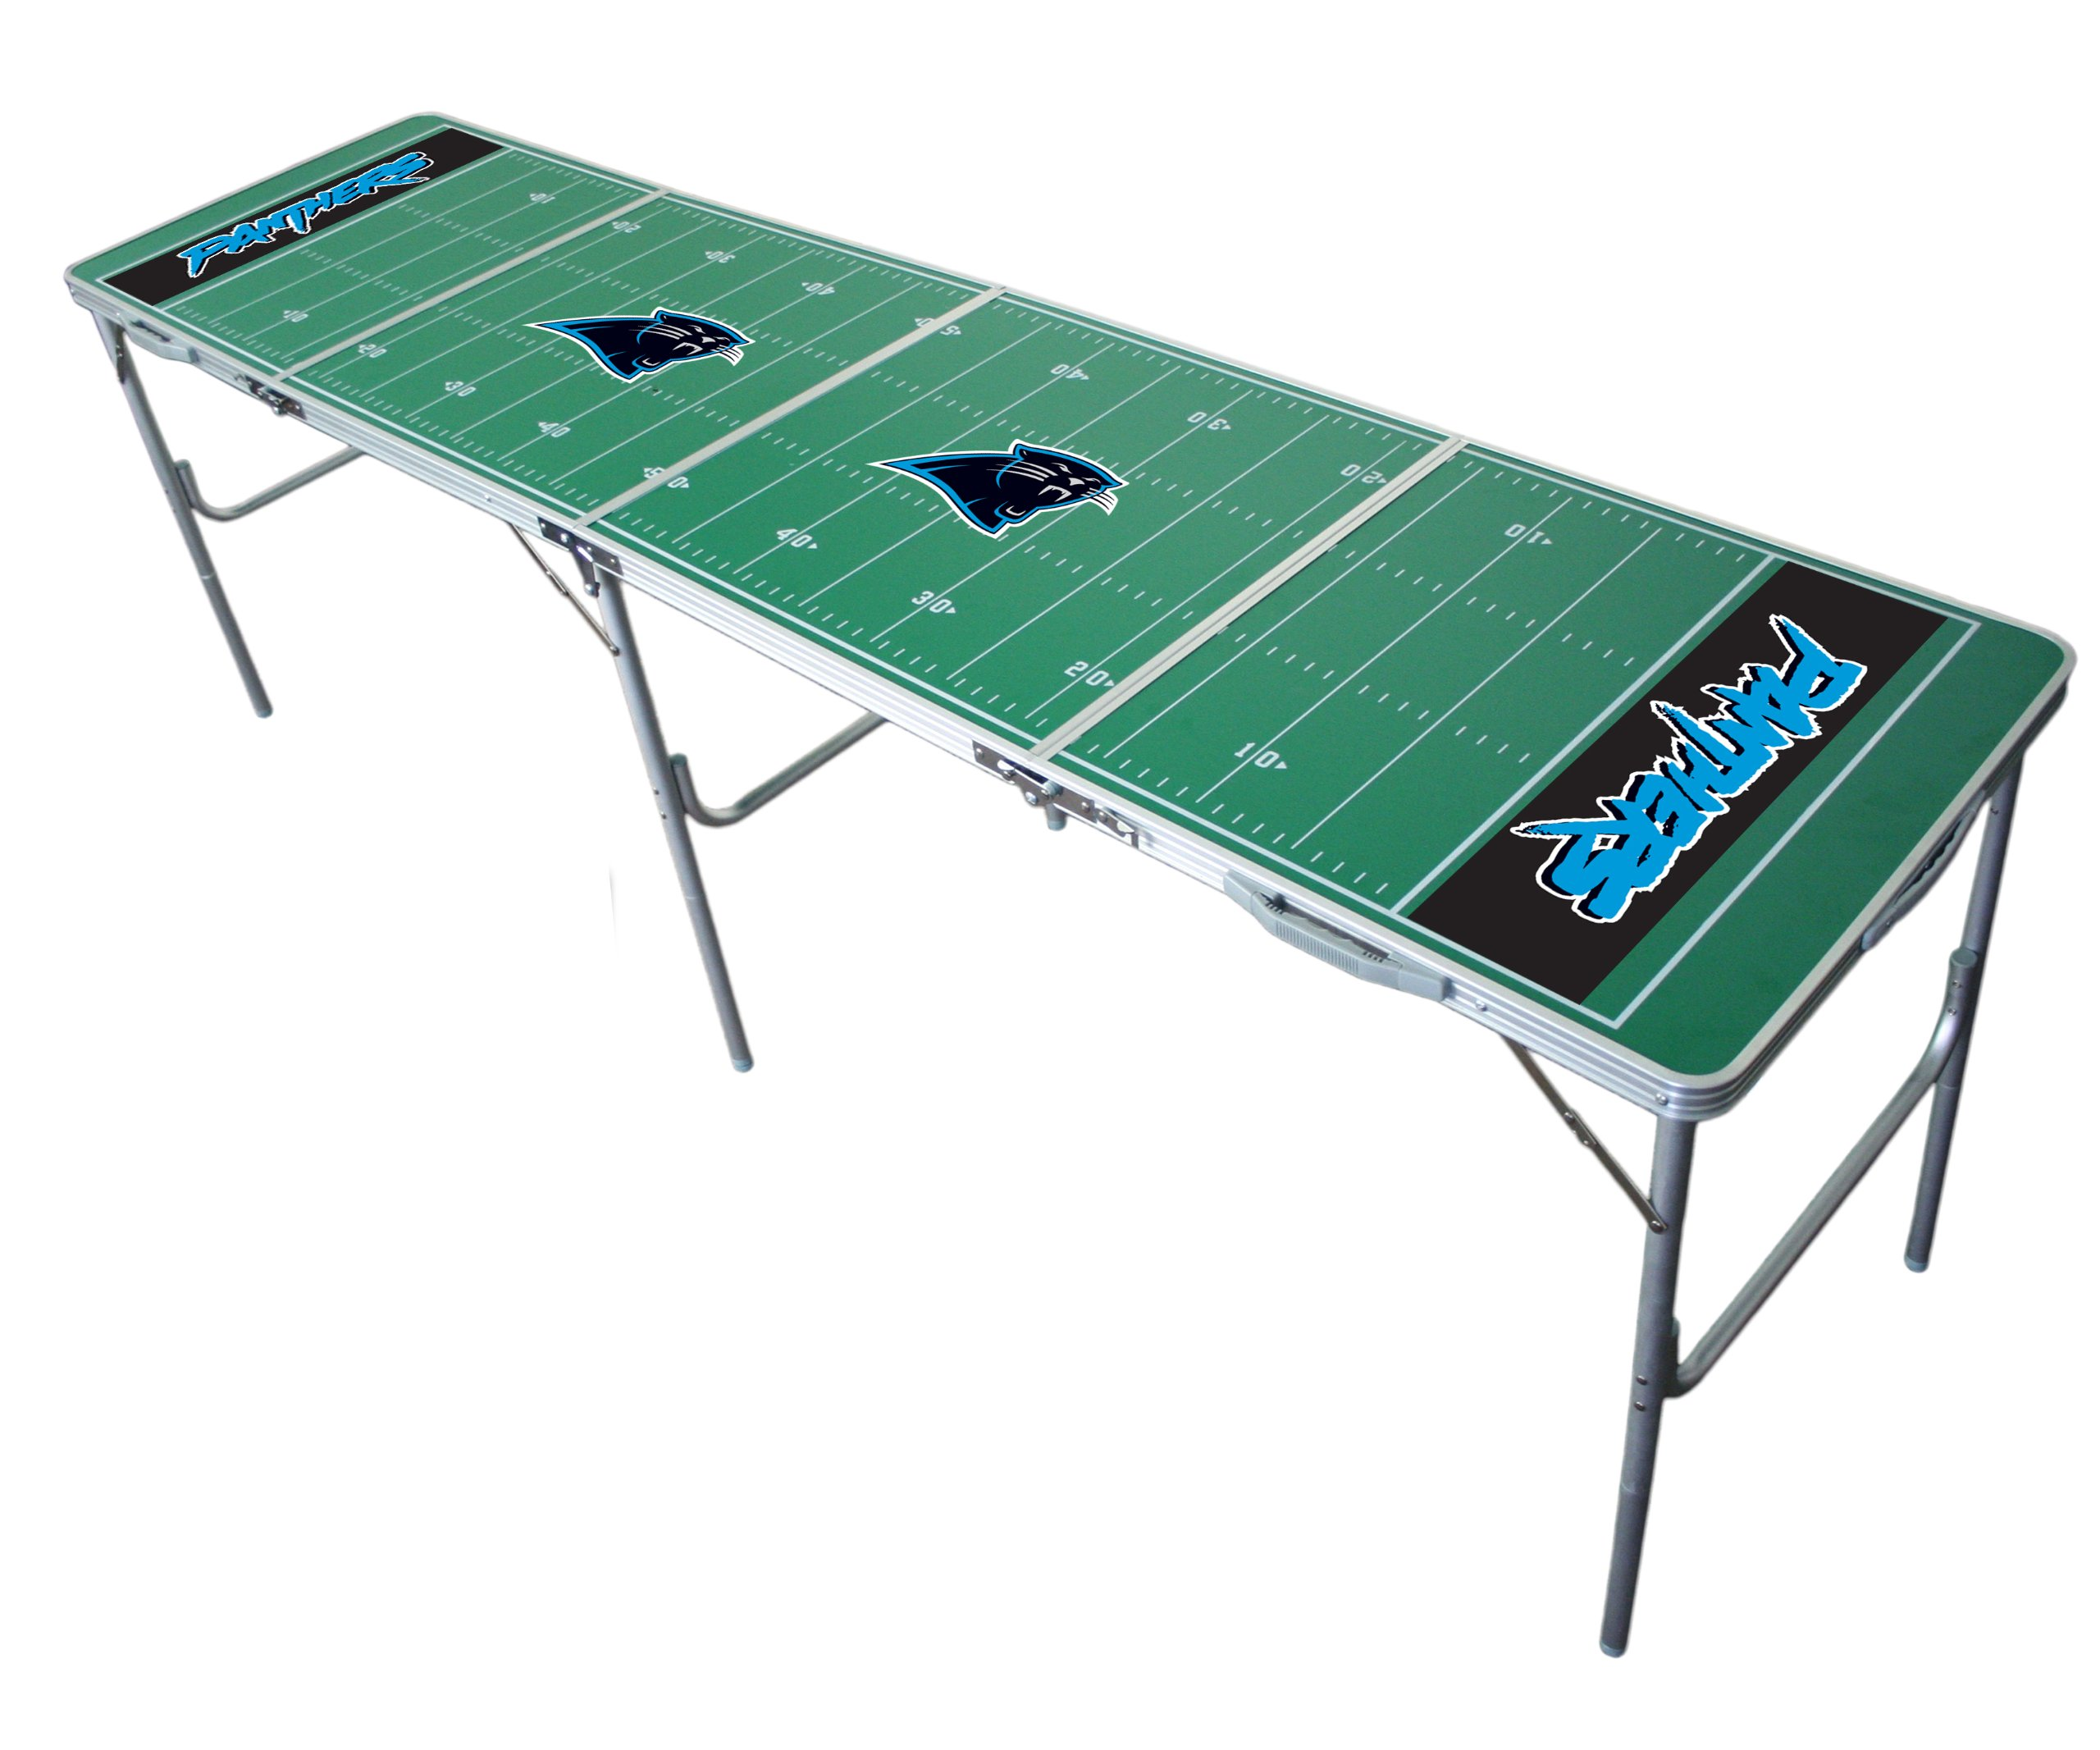 Carolina Panthers 2x8 Tailgate Table by Wild Sports by Wild Sports